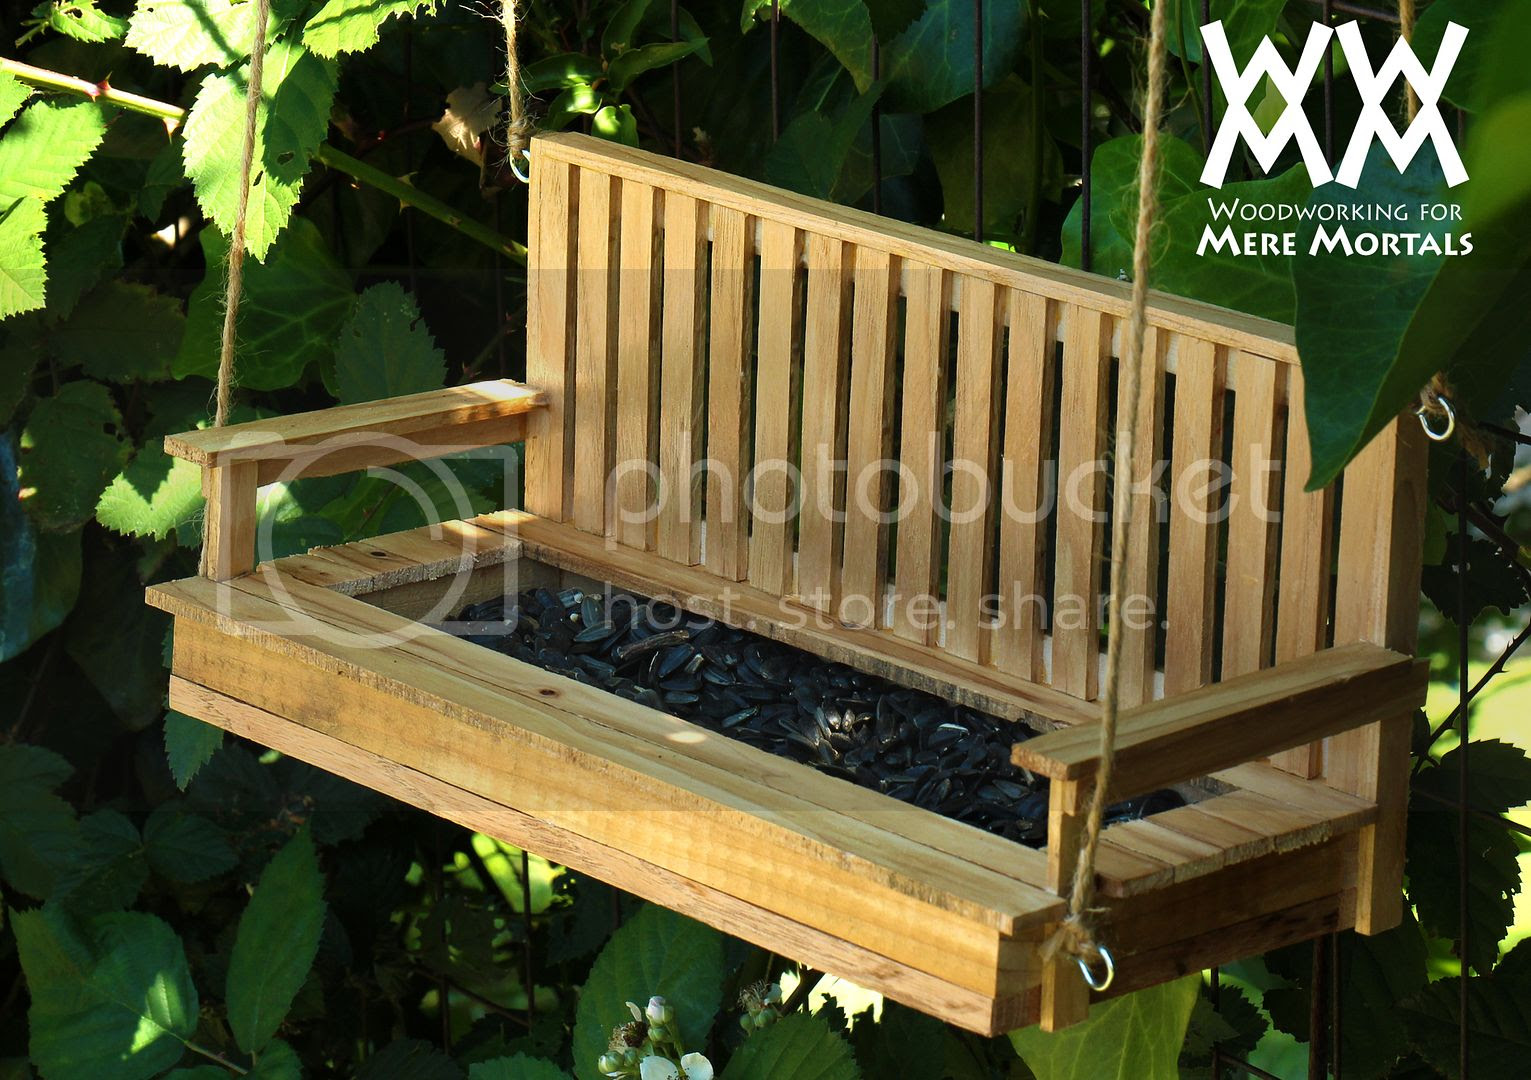 Woodworking for Mere Mortals: Free woodworking videos and plans ...